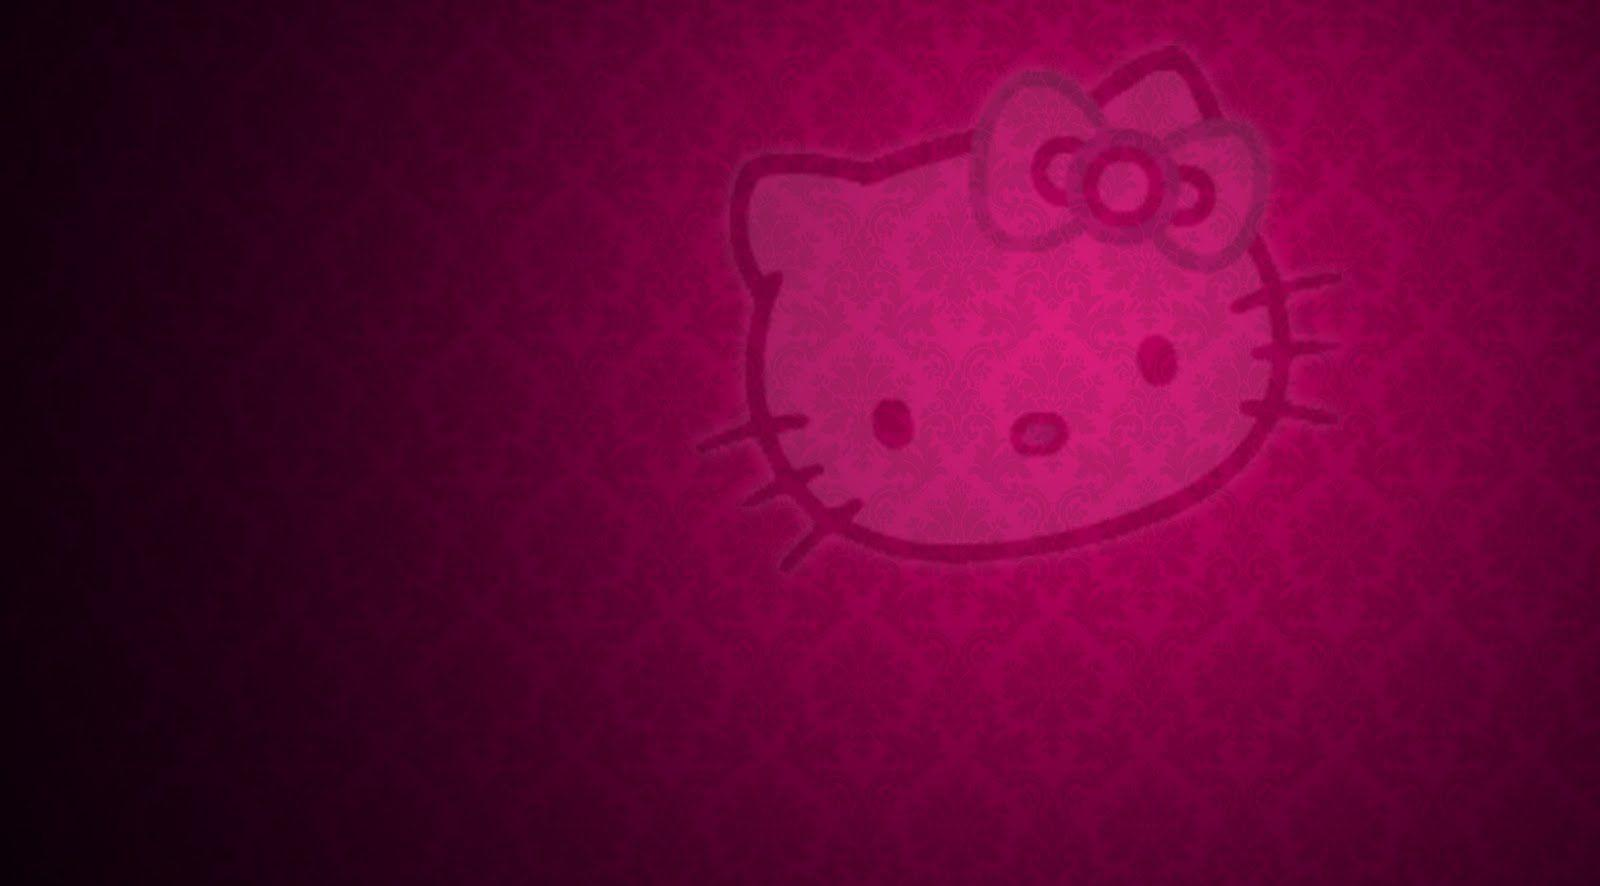 Download Wallpaper Hello Kitty Black - PeCRCAa  You Should Have_128481.jpg